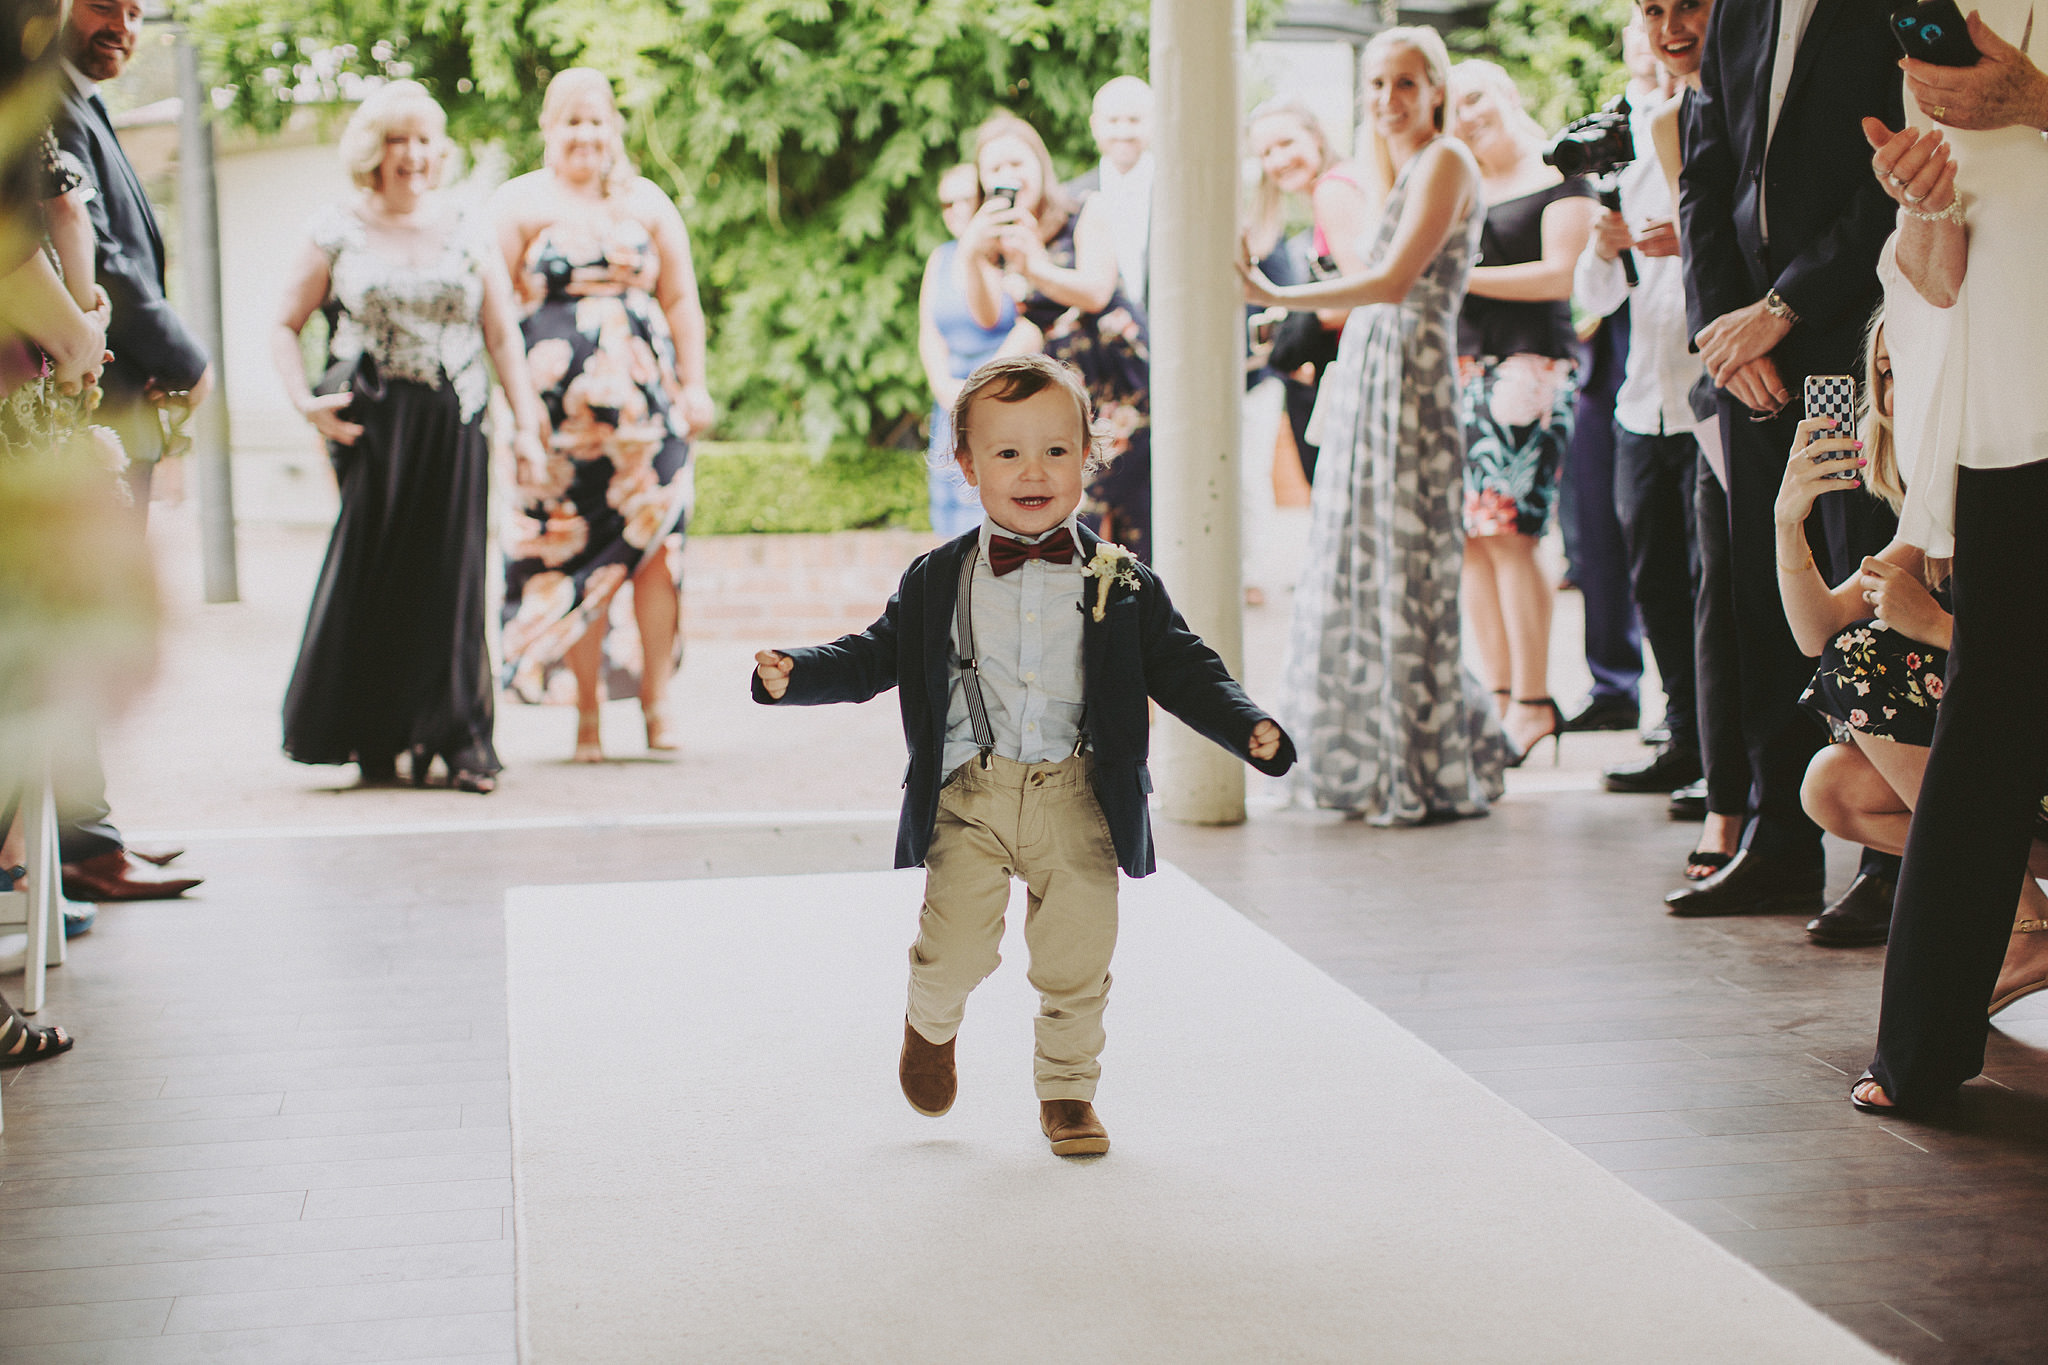 Little boy running down the aisle at wedding | Andrea Calodolce Marriage Celebrant